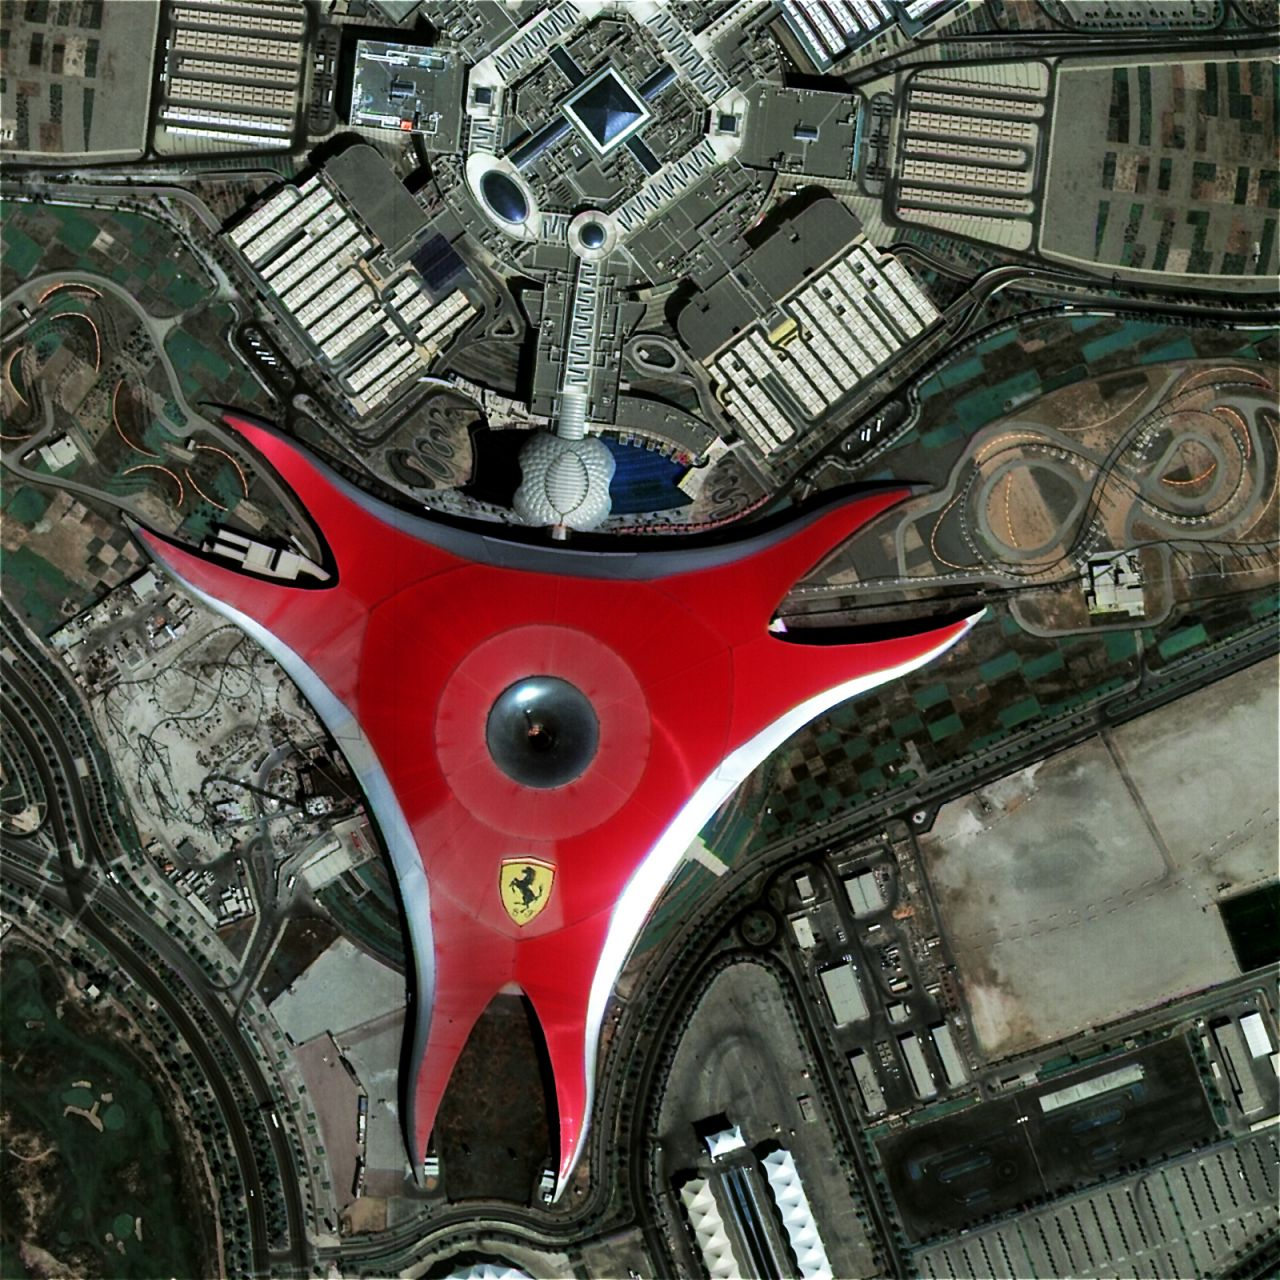 Ferrari World in Abu Dhabi, imaged by the Jilin-1A optical satellite over 600km above the Earth.